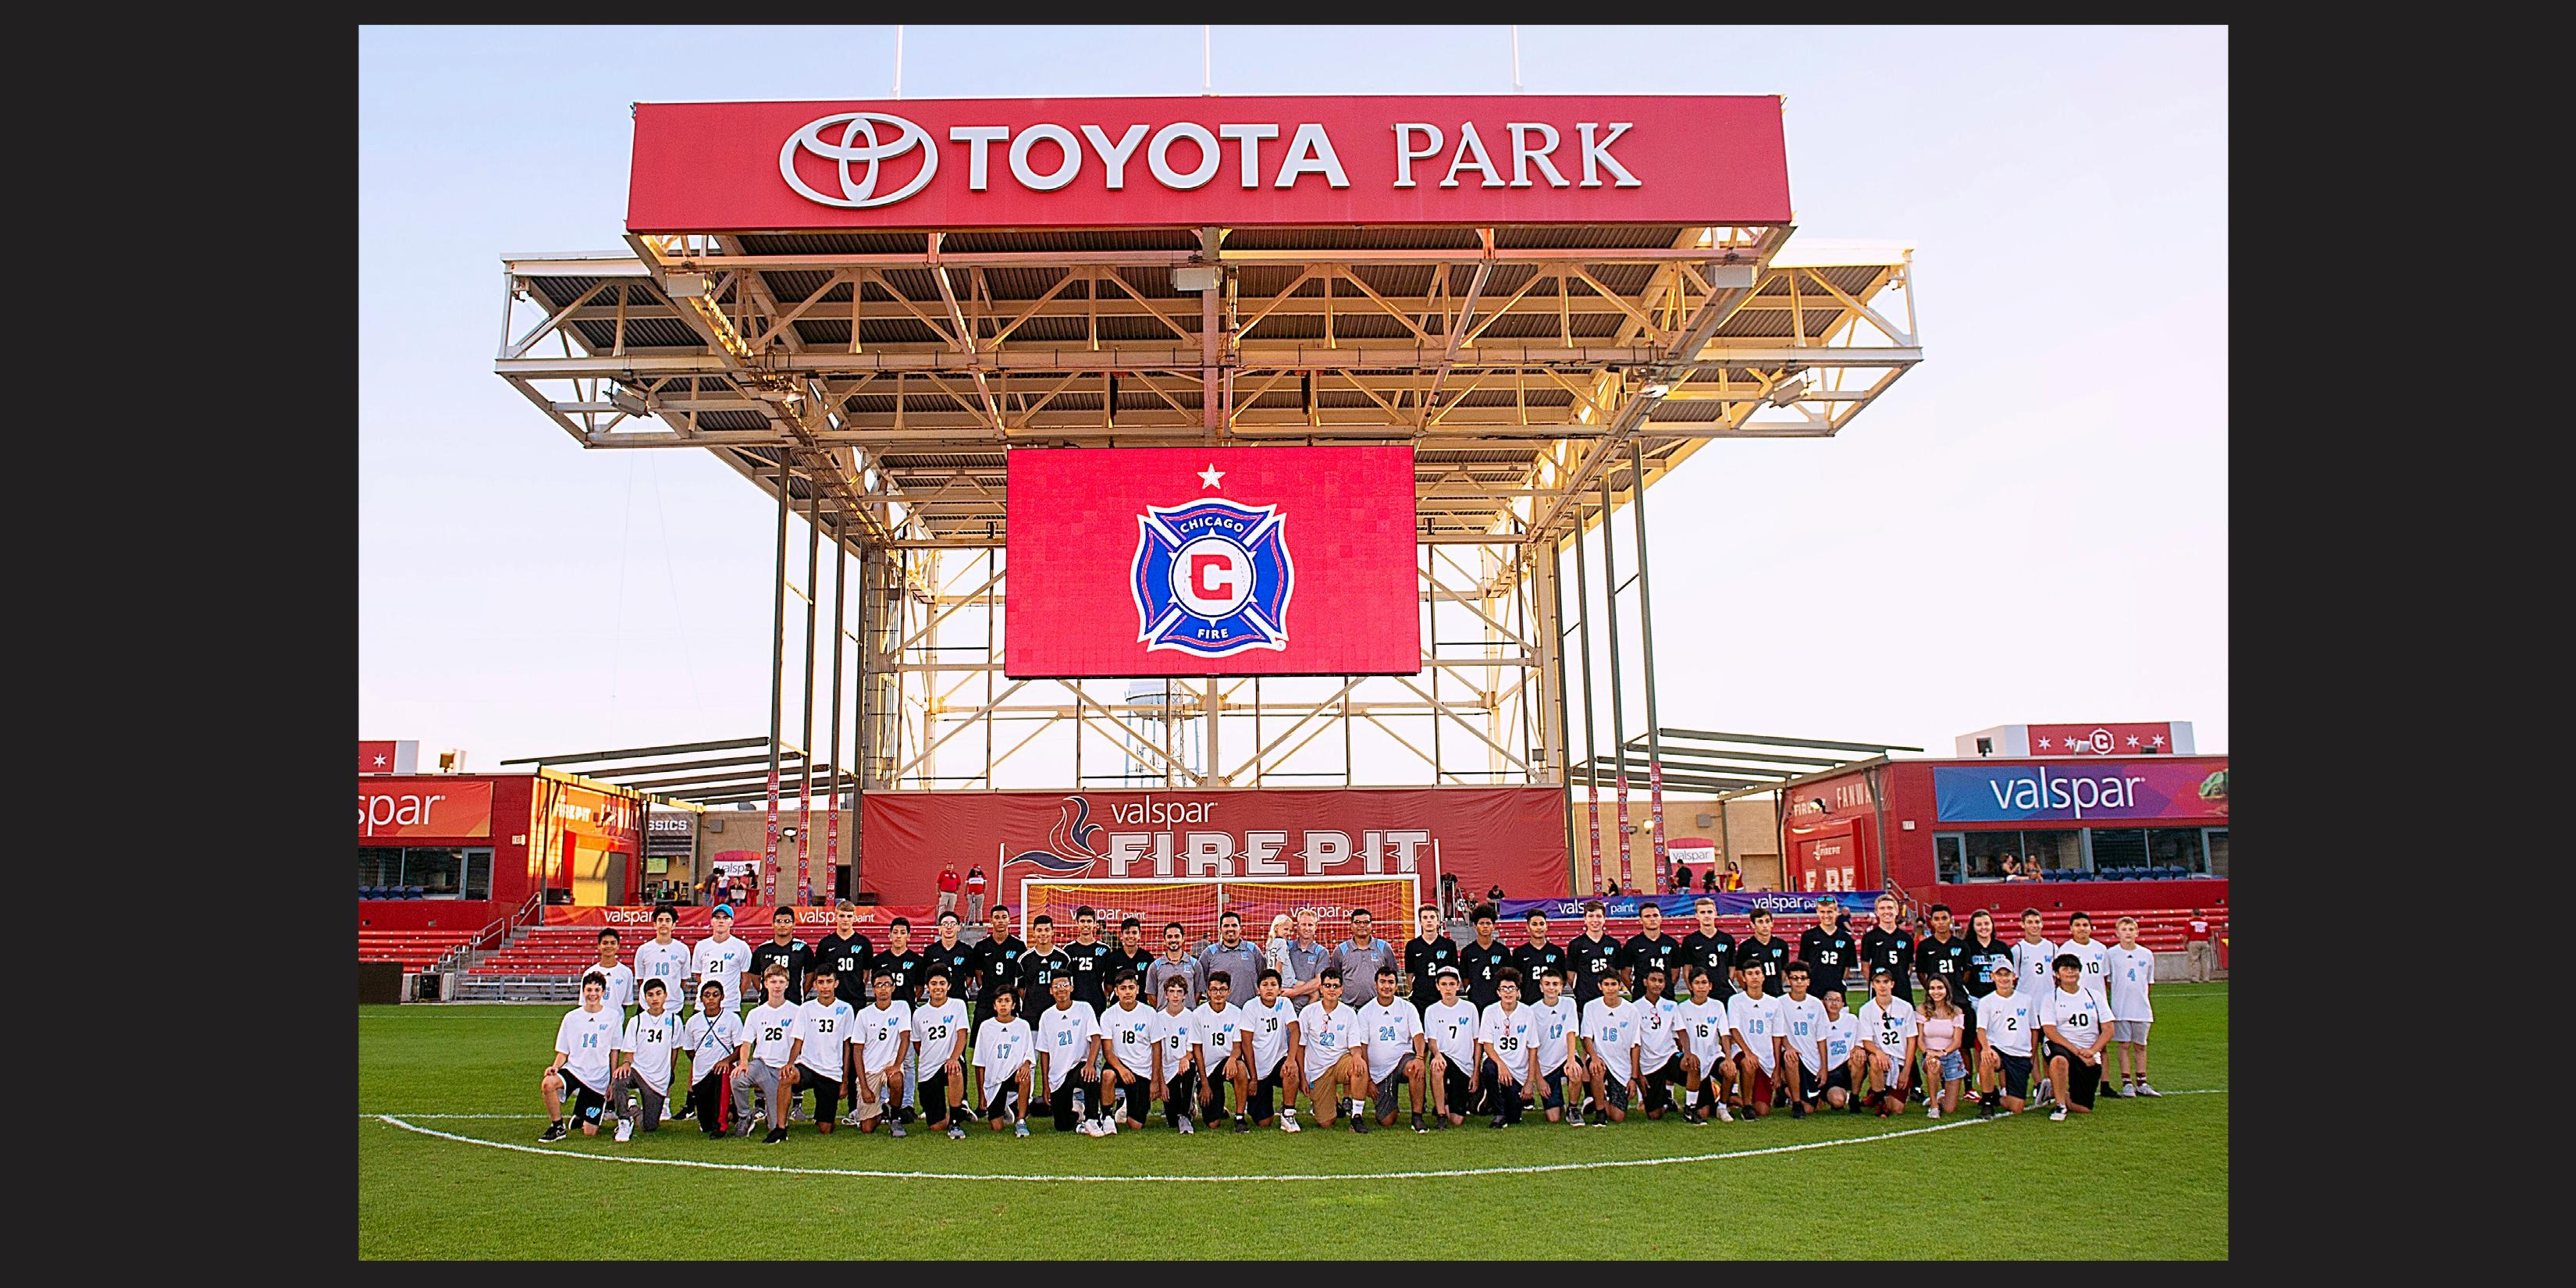 Willowbrook Boys Soccer Team visits Toyota Park for Chicago Fire Soccer Club game